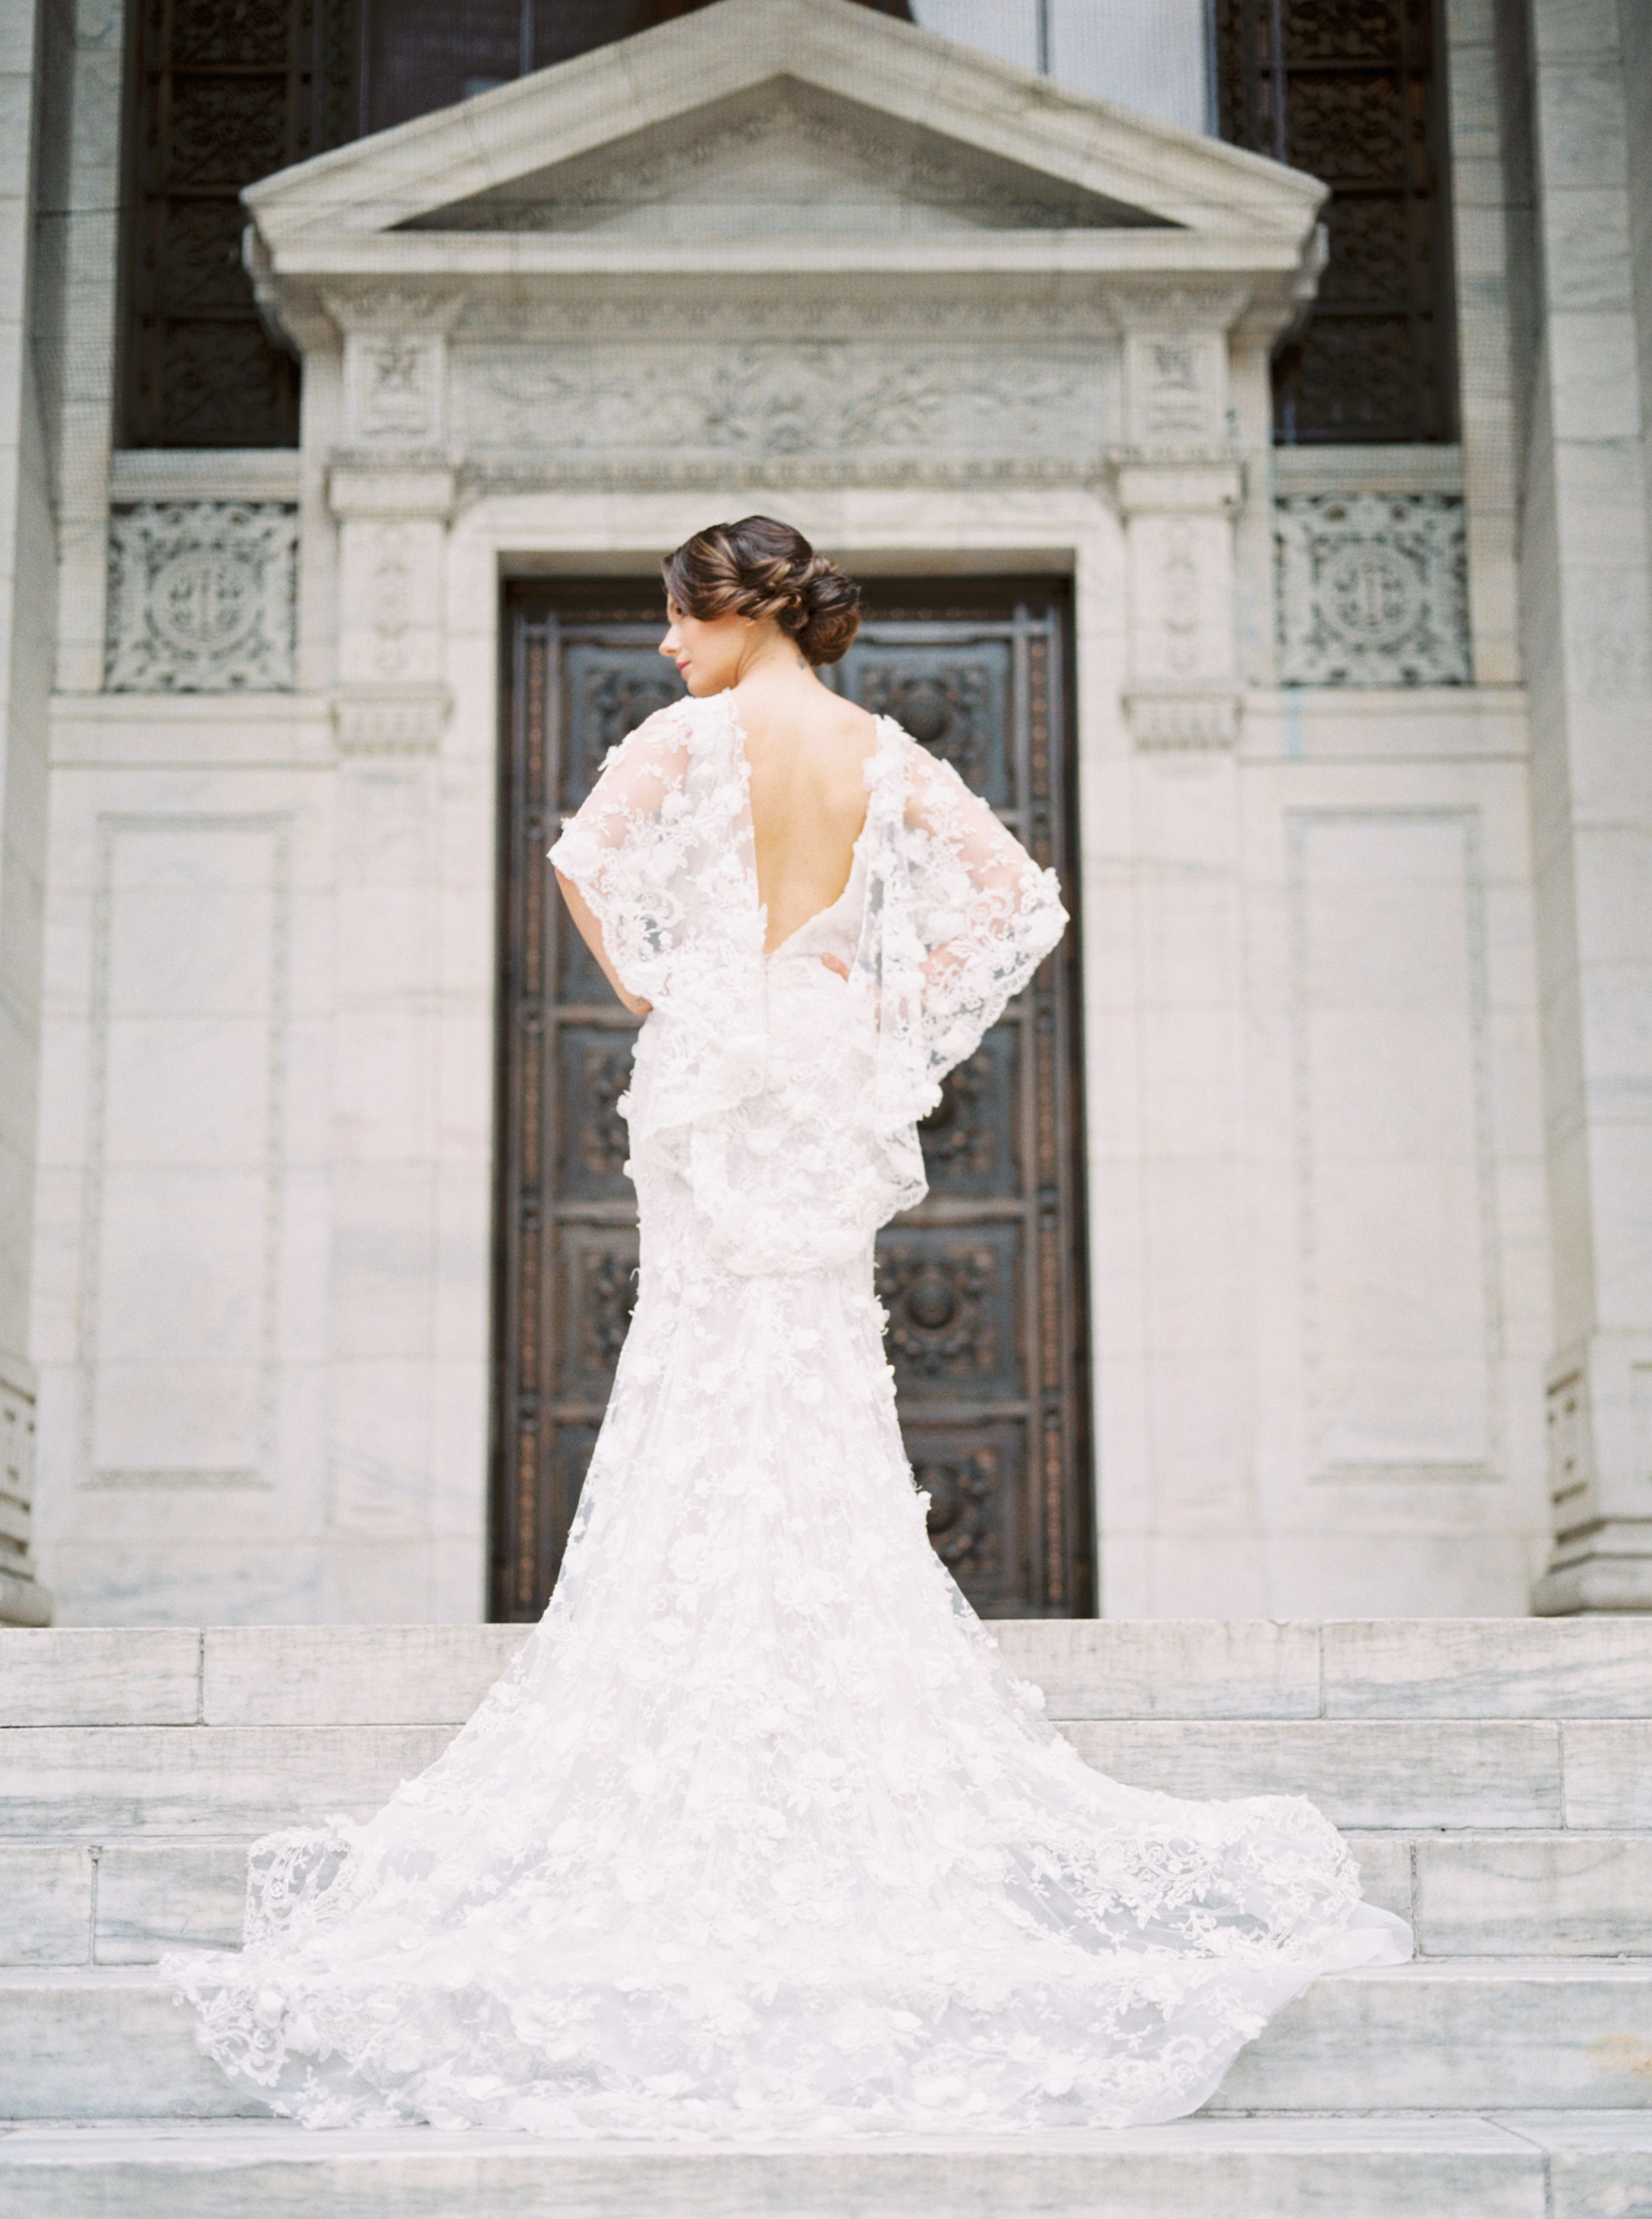 The Tale Of A Marchesa Gown And The New York City Public Library Marchesa Bridal Gowns Marchesa Bridal Wedding Dresses